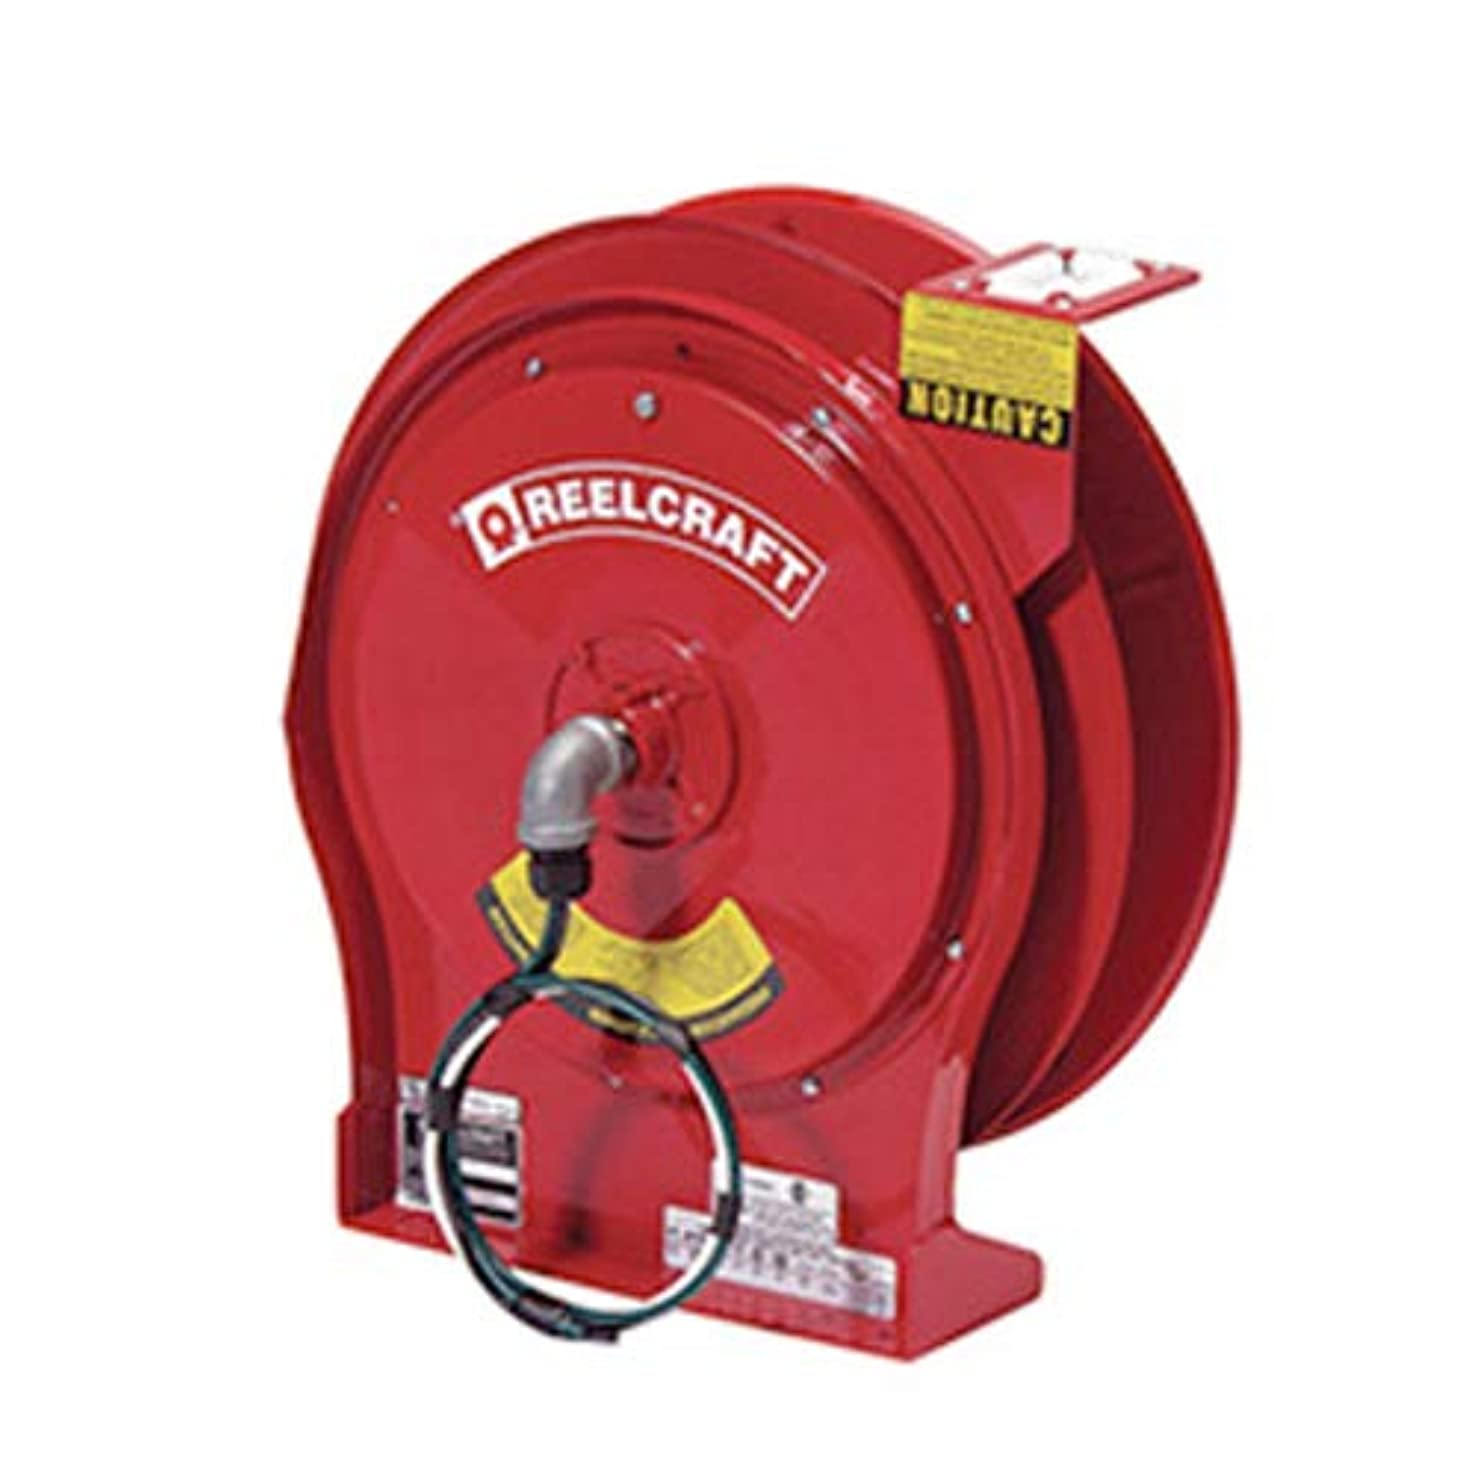 Reelcraft L 5700 Heavy Duty Cord Reel, 10 AWG/3 Conductors x 50', 30 AMP, Cord Not Included blujfdjaginyg4